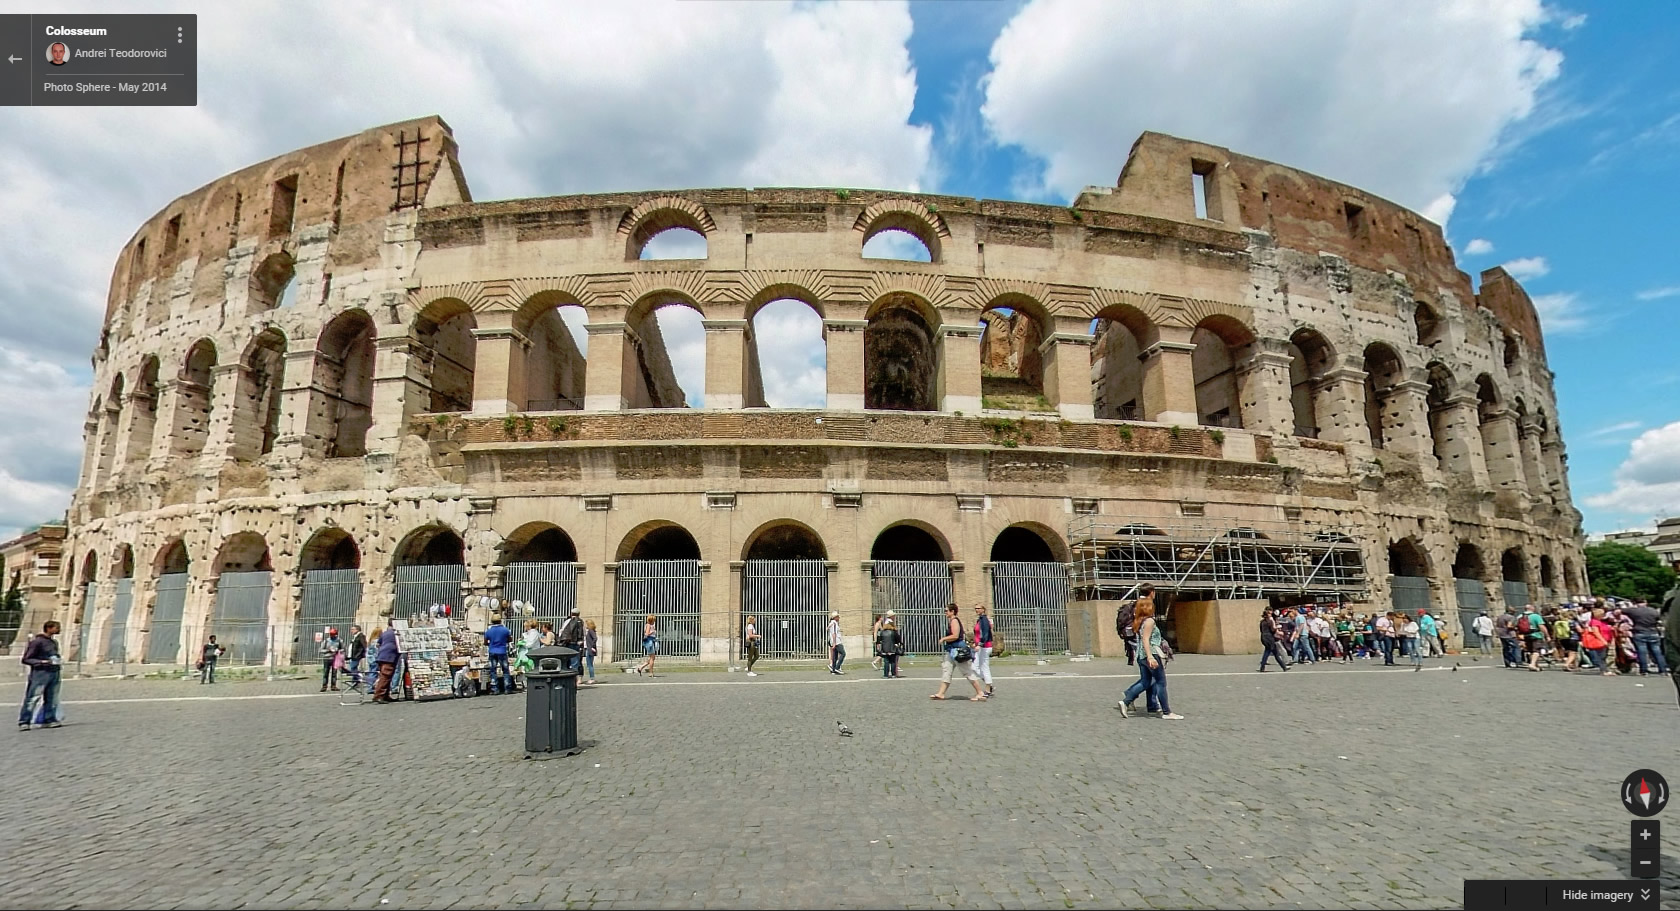 Challenge colleagues to a virtual race around Rome, Italy!